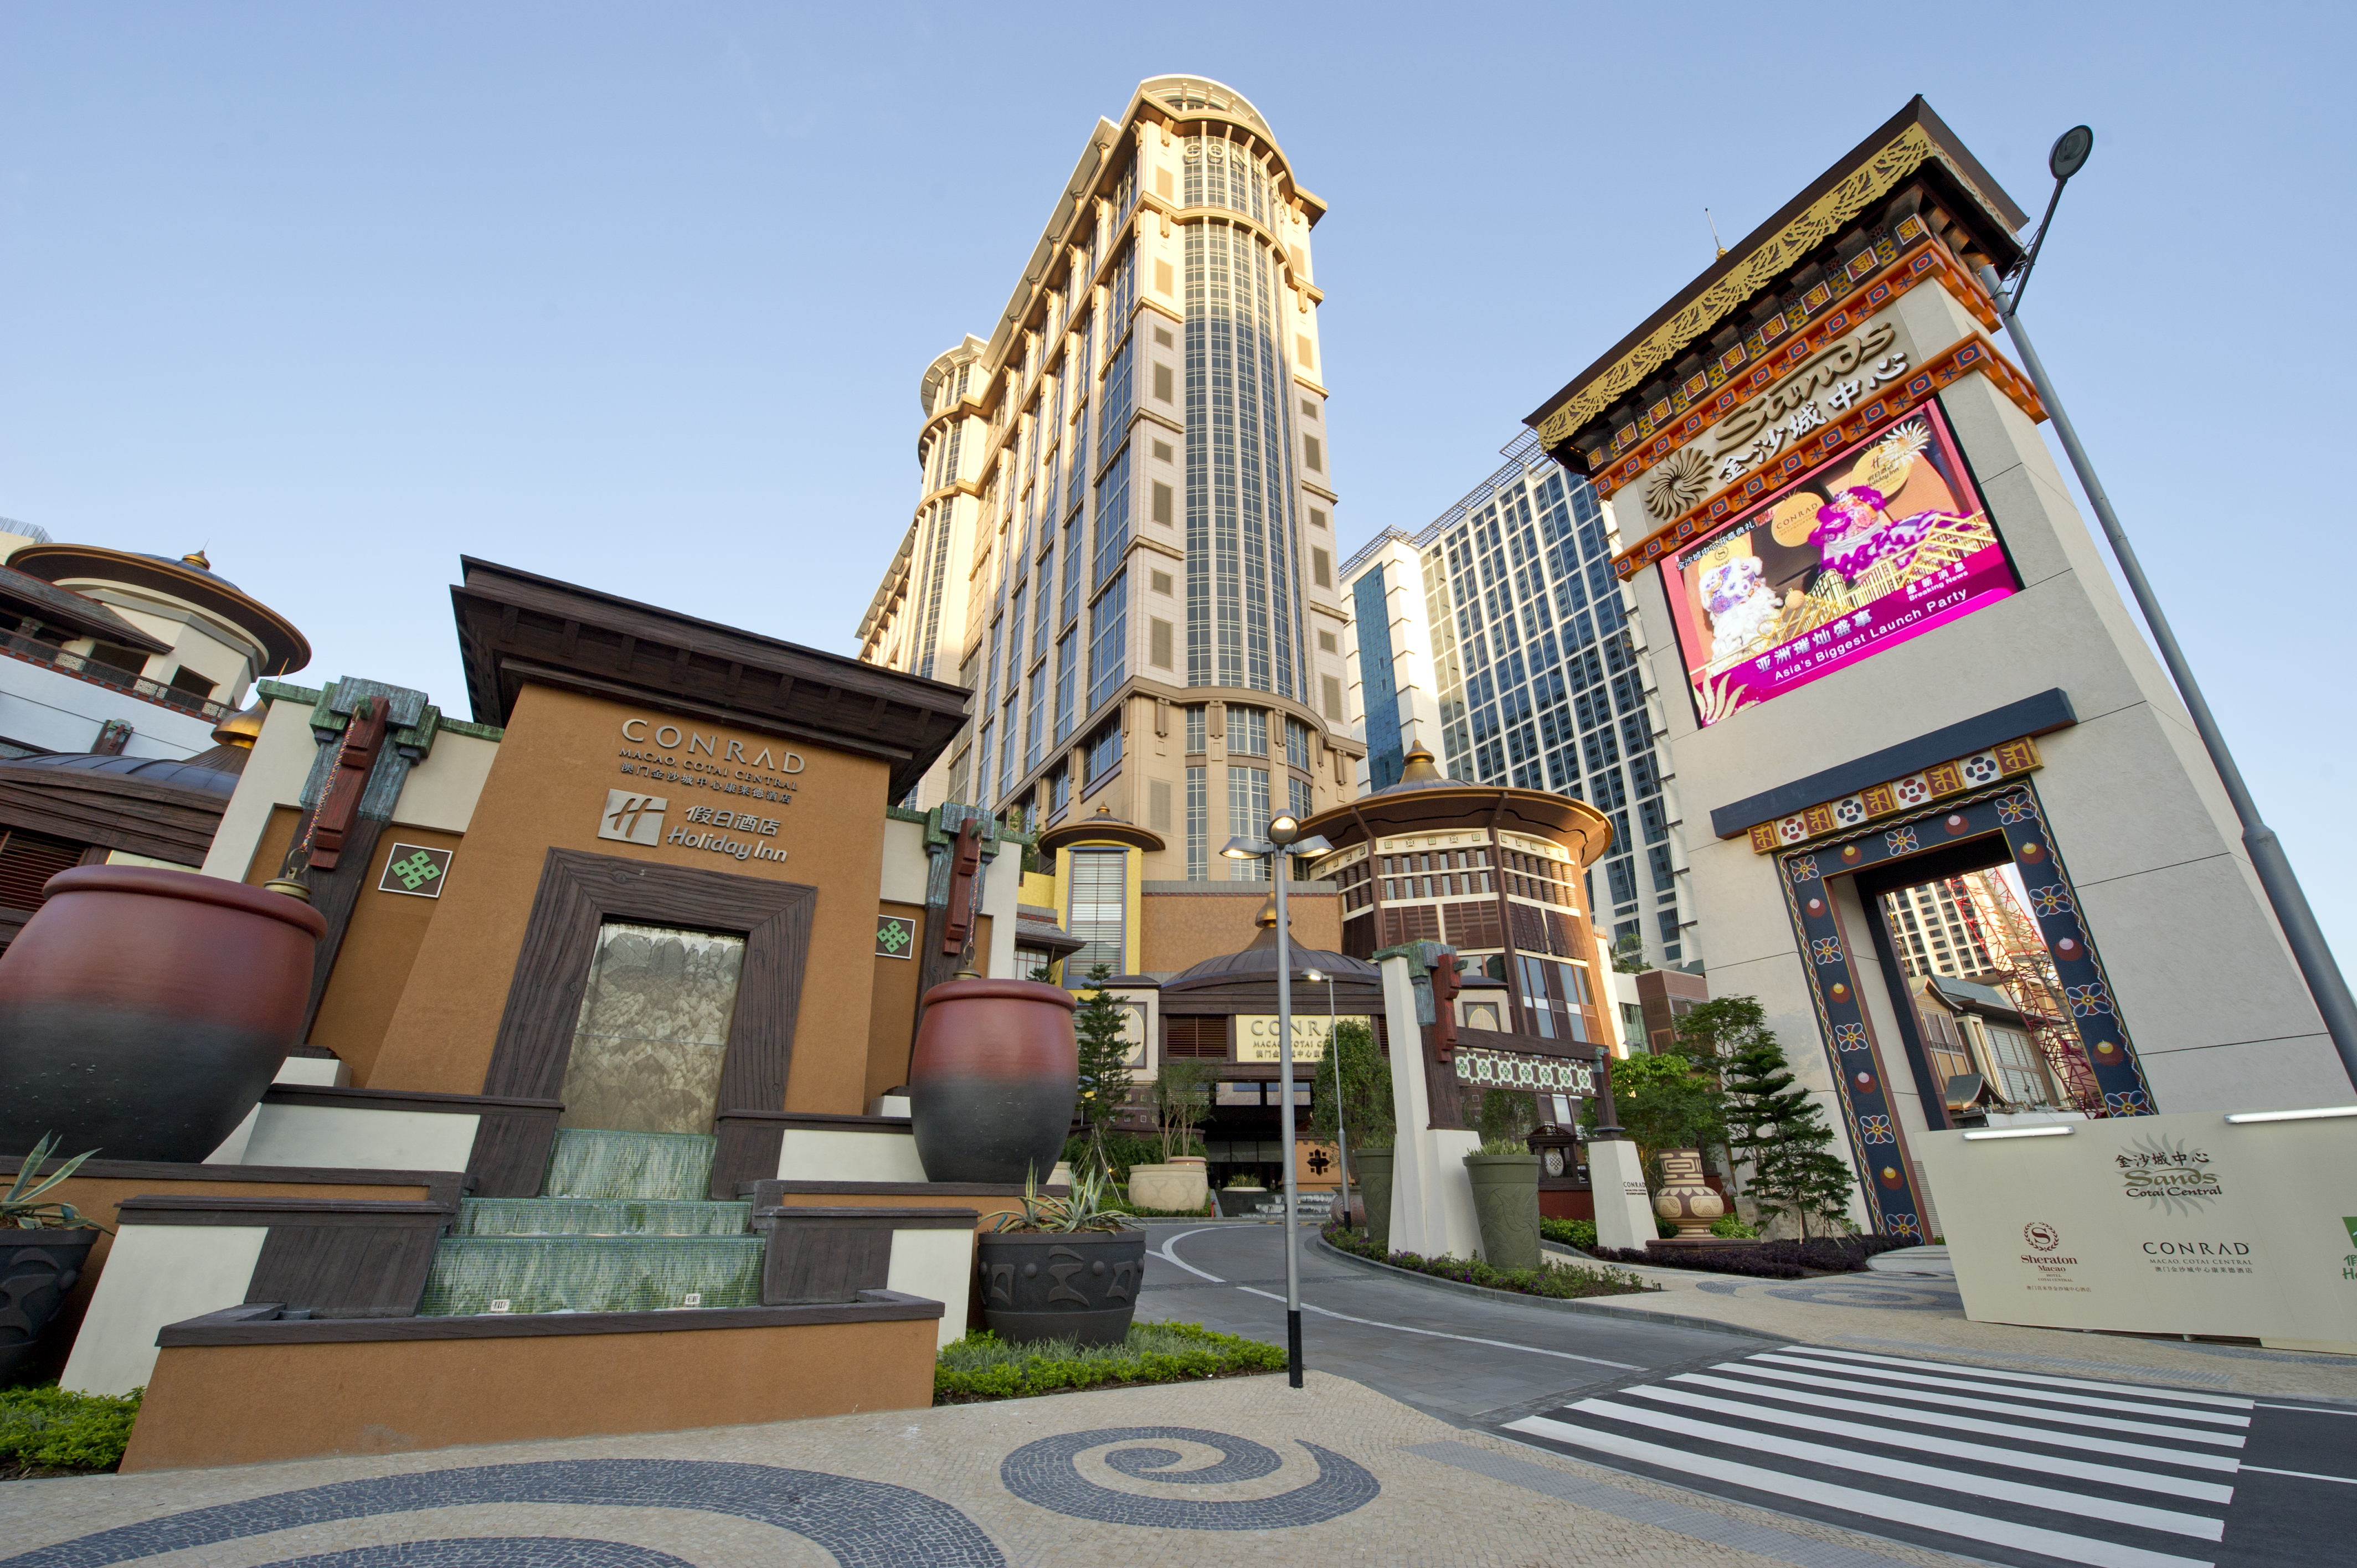 Sands Cotai Central Macau, Hsin Chong Group Holdings Limited - What's New